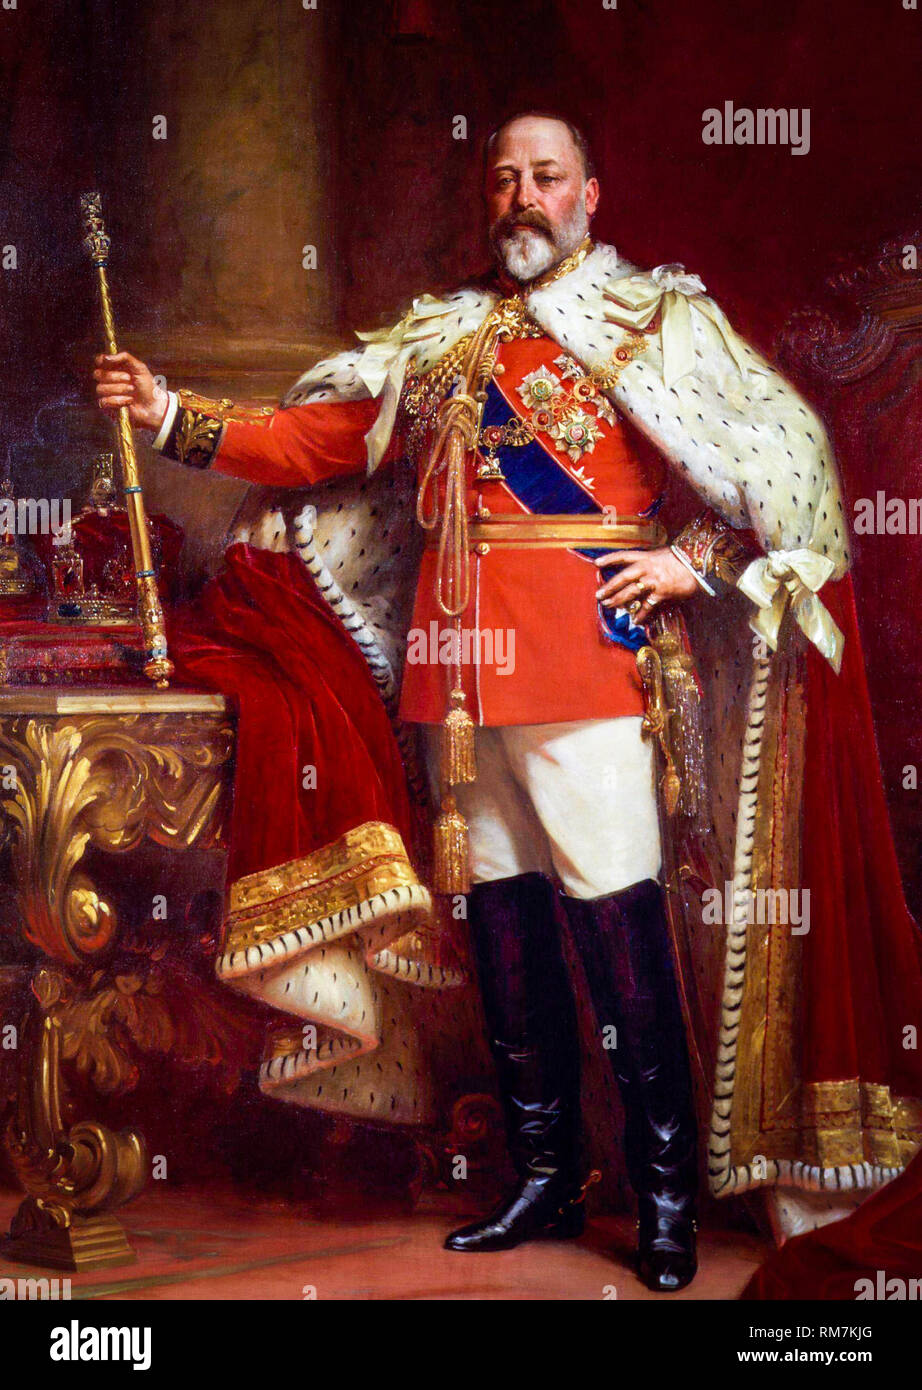 King Edward VII of the United Kingdom in Coronation Robes, portrait by Sir Luke Fildes, painting c.1901 - Stock Image